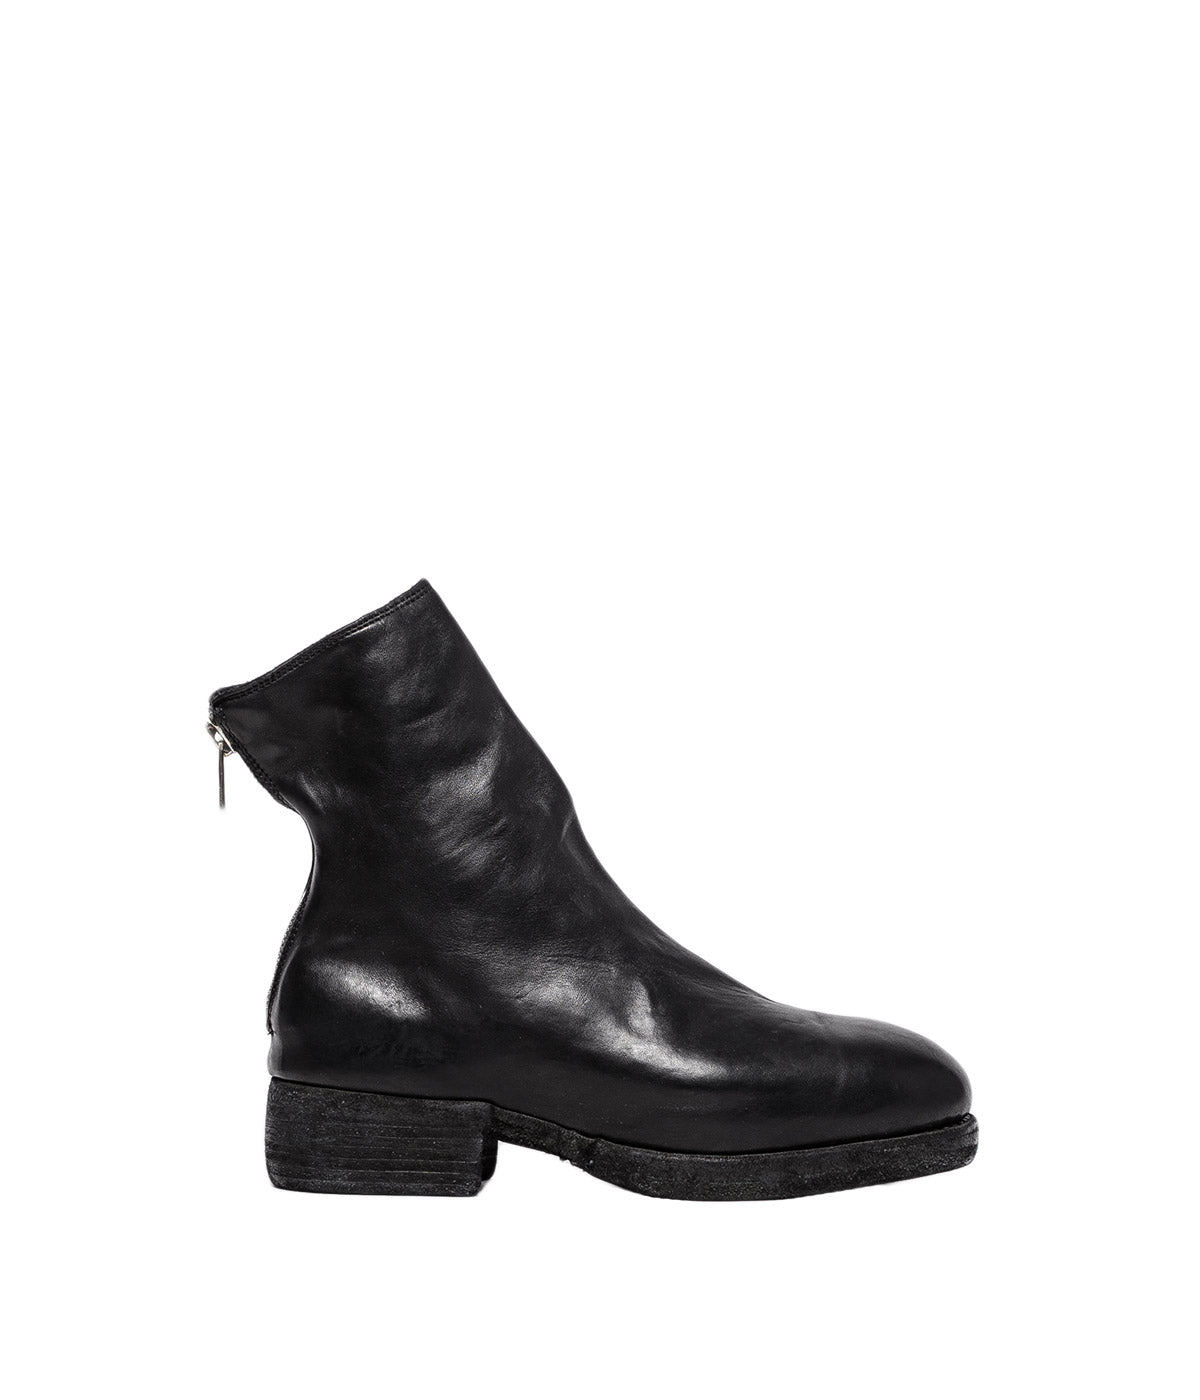 Black Back Zip High Boots